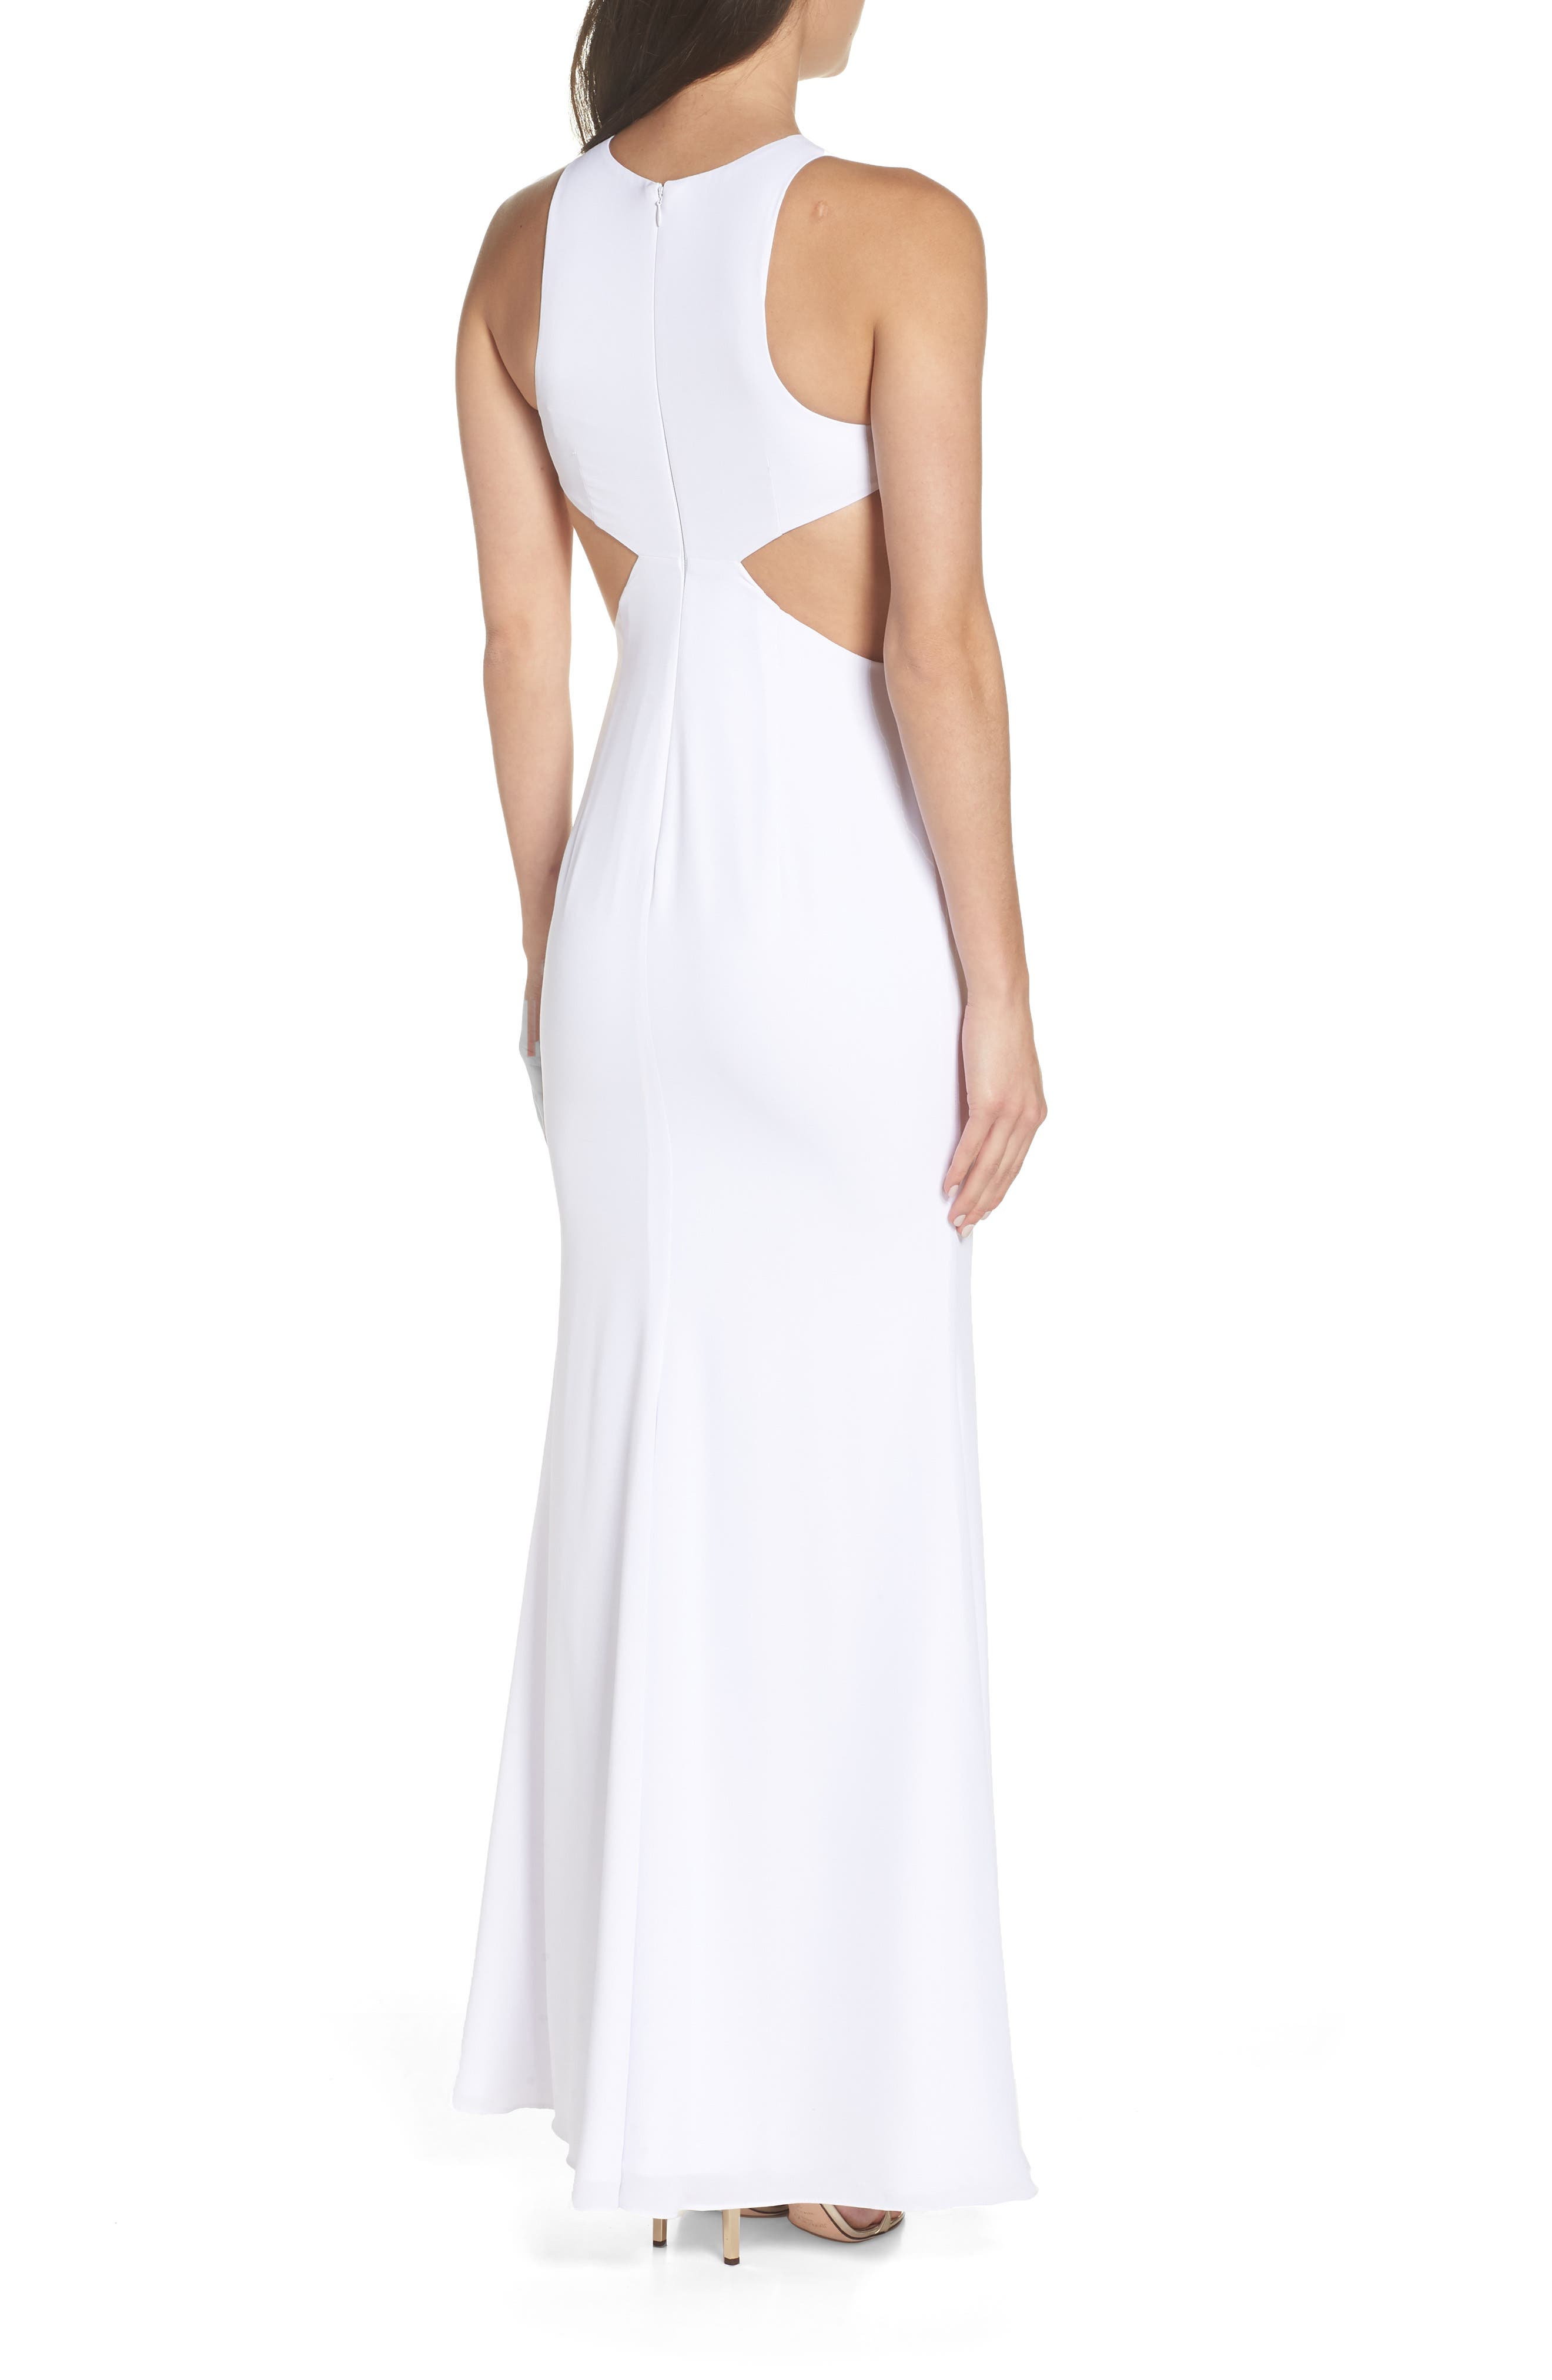 Fame & Partners The Midheaven Gown,                             Alternate thumbnail 2, color,                             WHITE